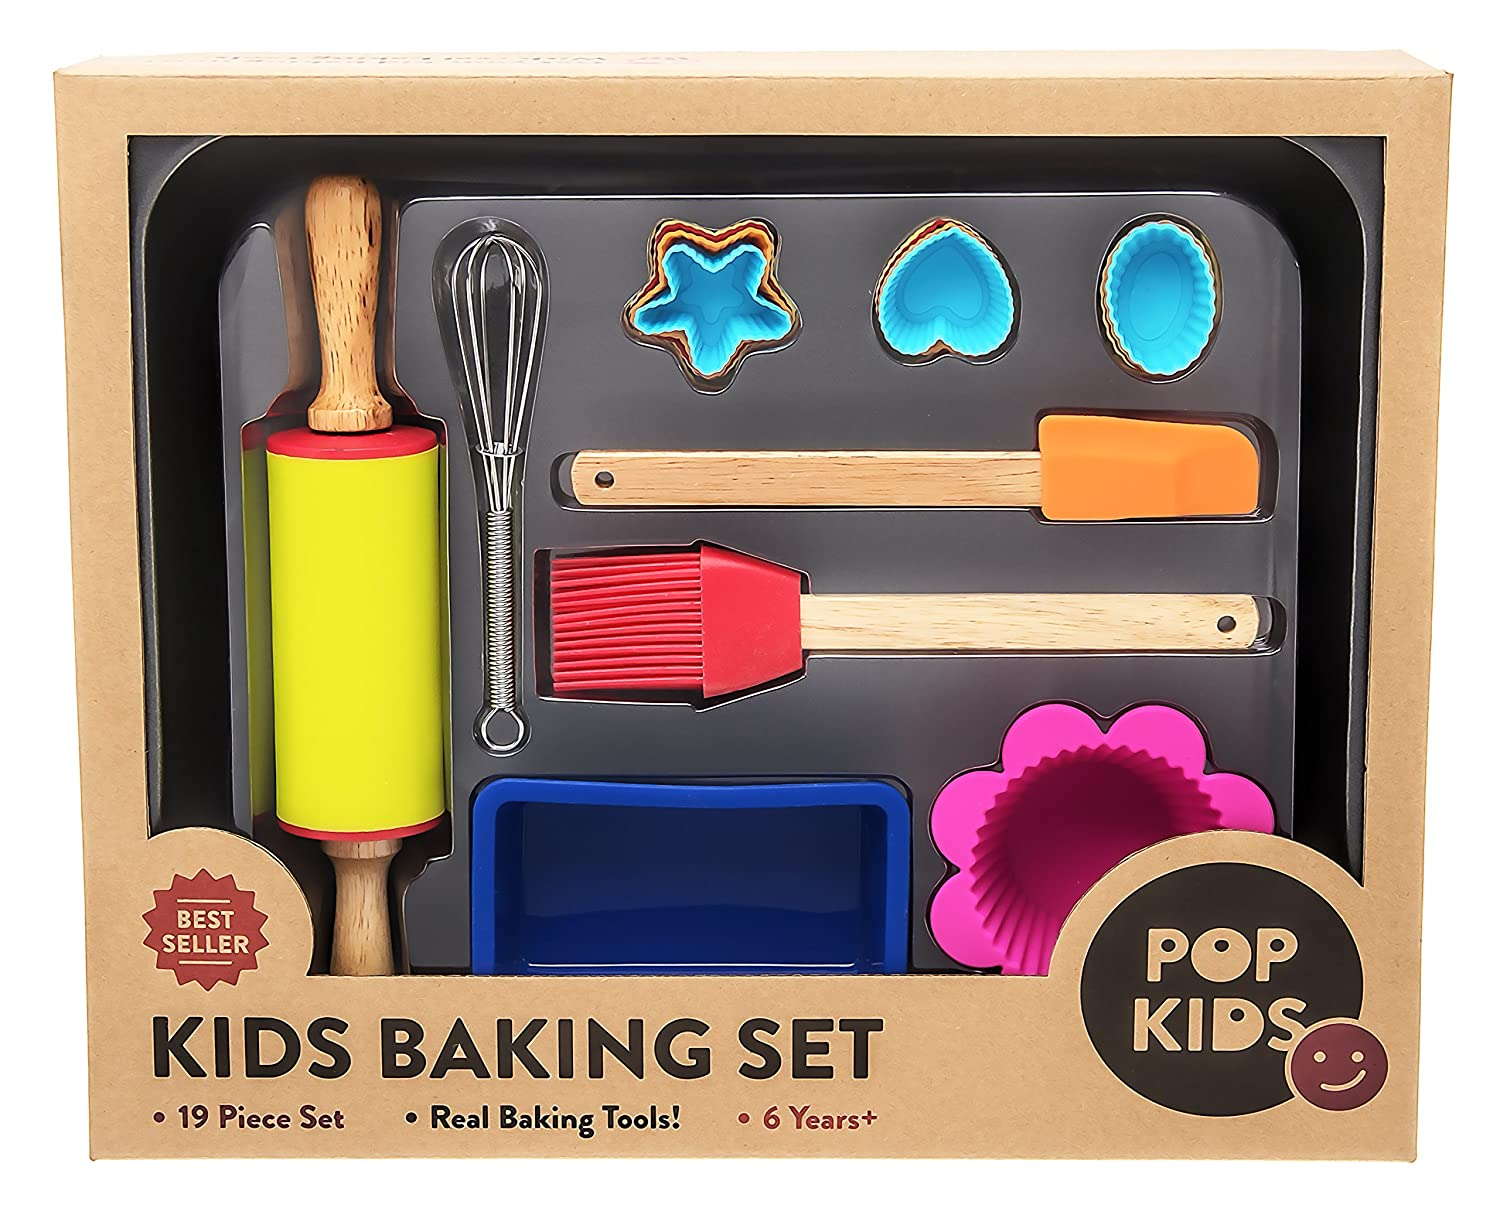 Pop Kids Baking Set for Family Fun Premium 19-Piece Kit for Children Learning to Bake Pop Kids Bake Set